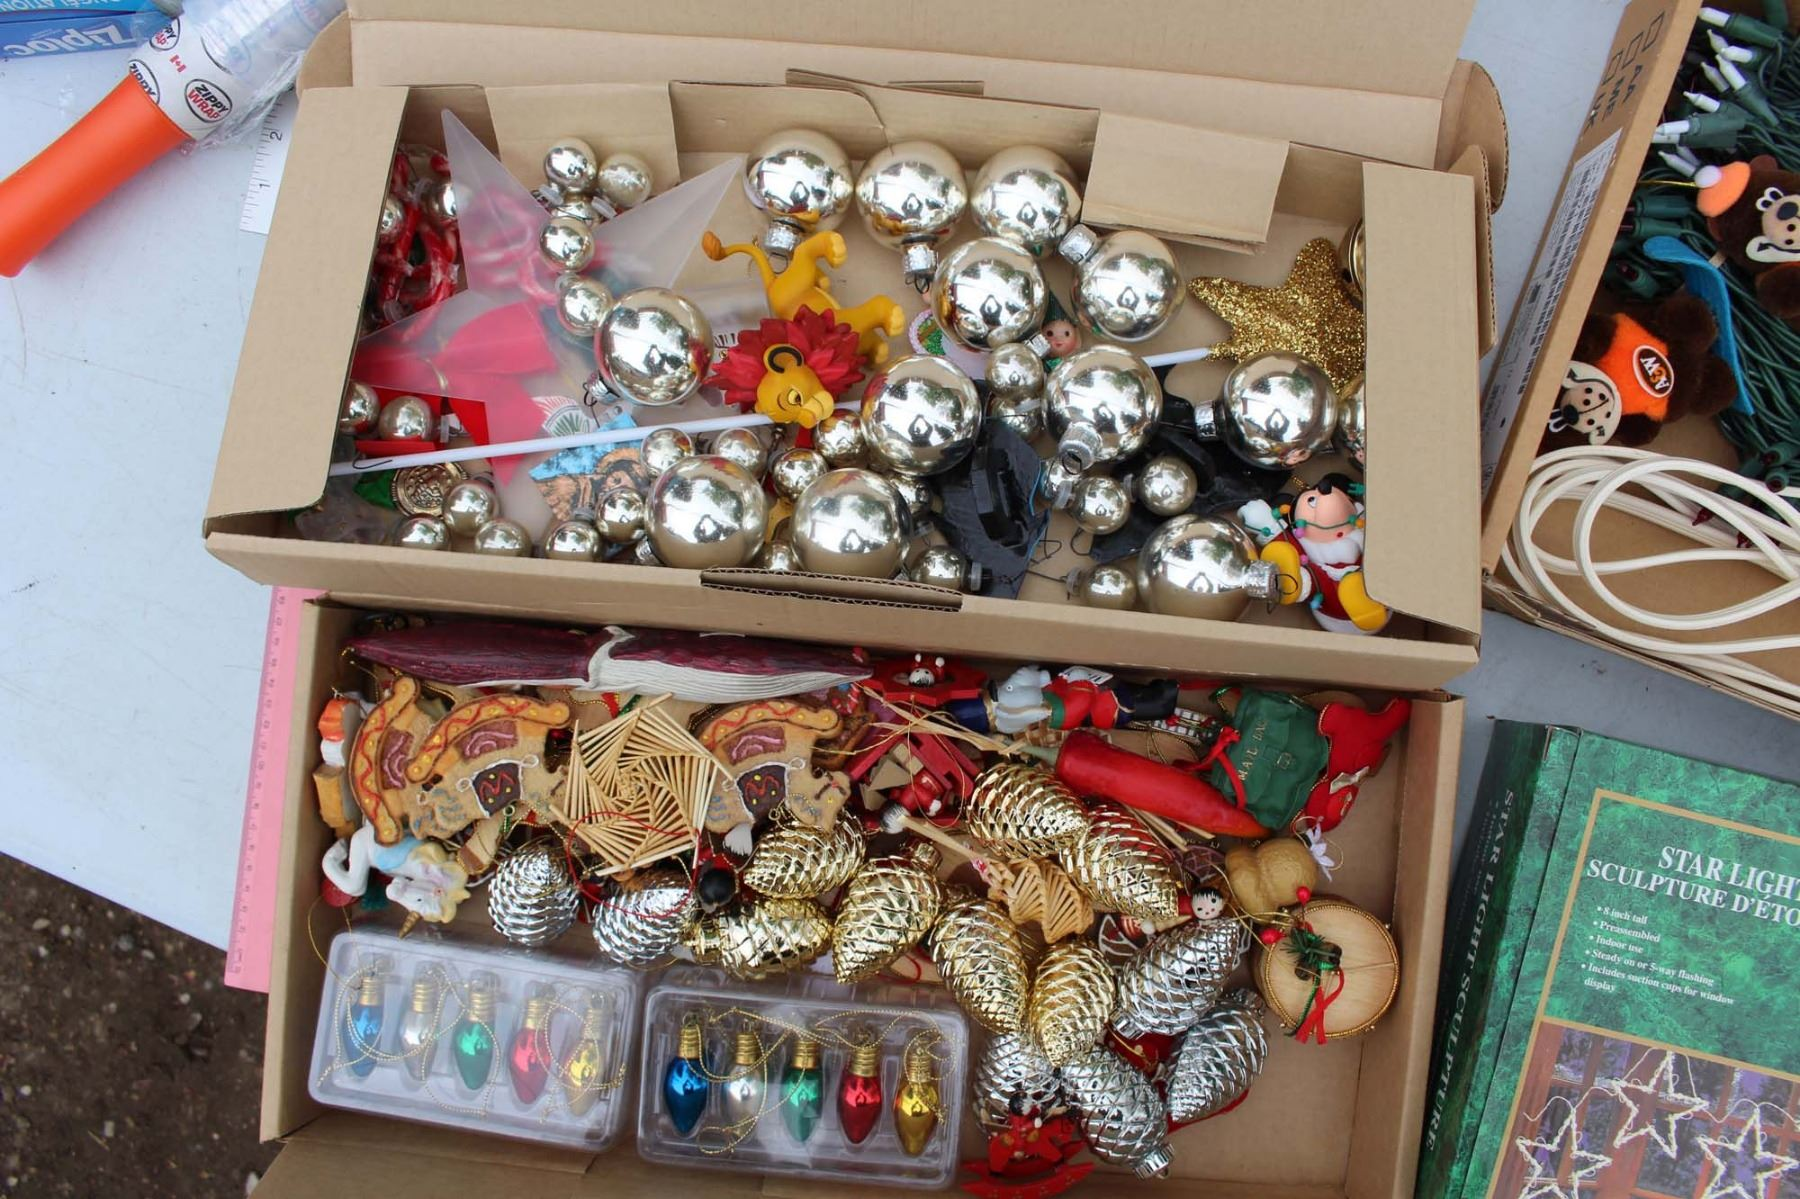 Image 2 Box Full Of Christmas Ornaments And Related